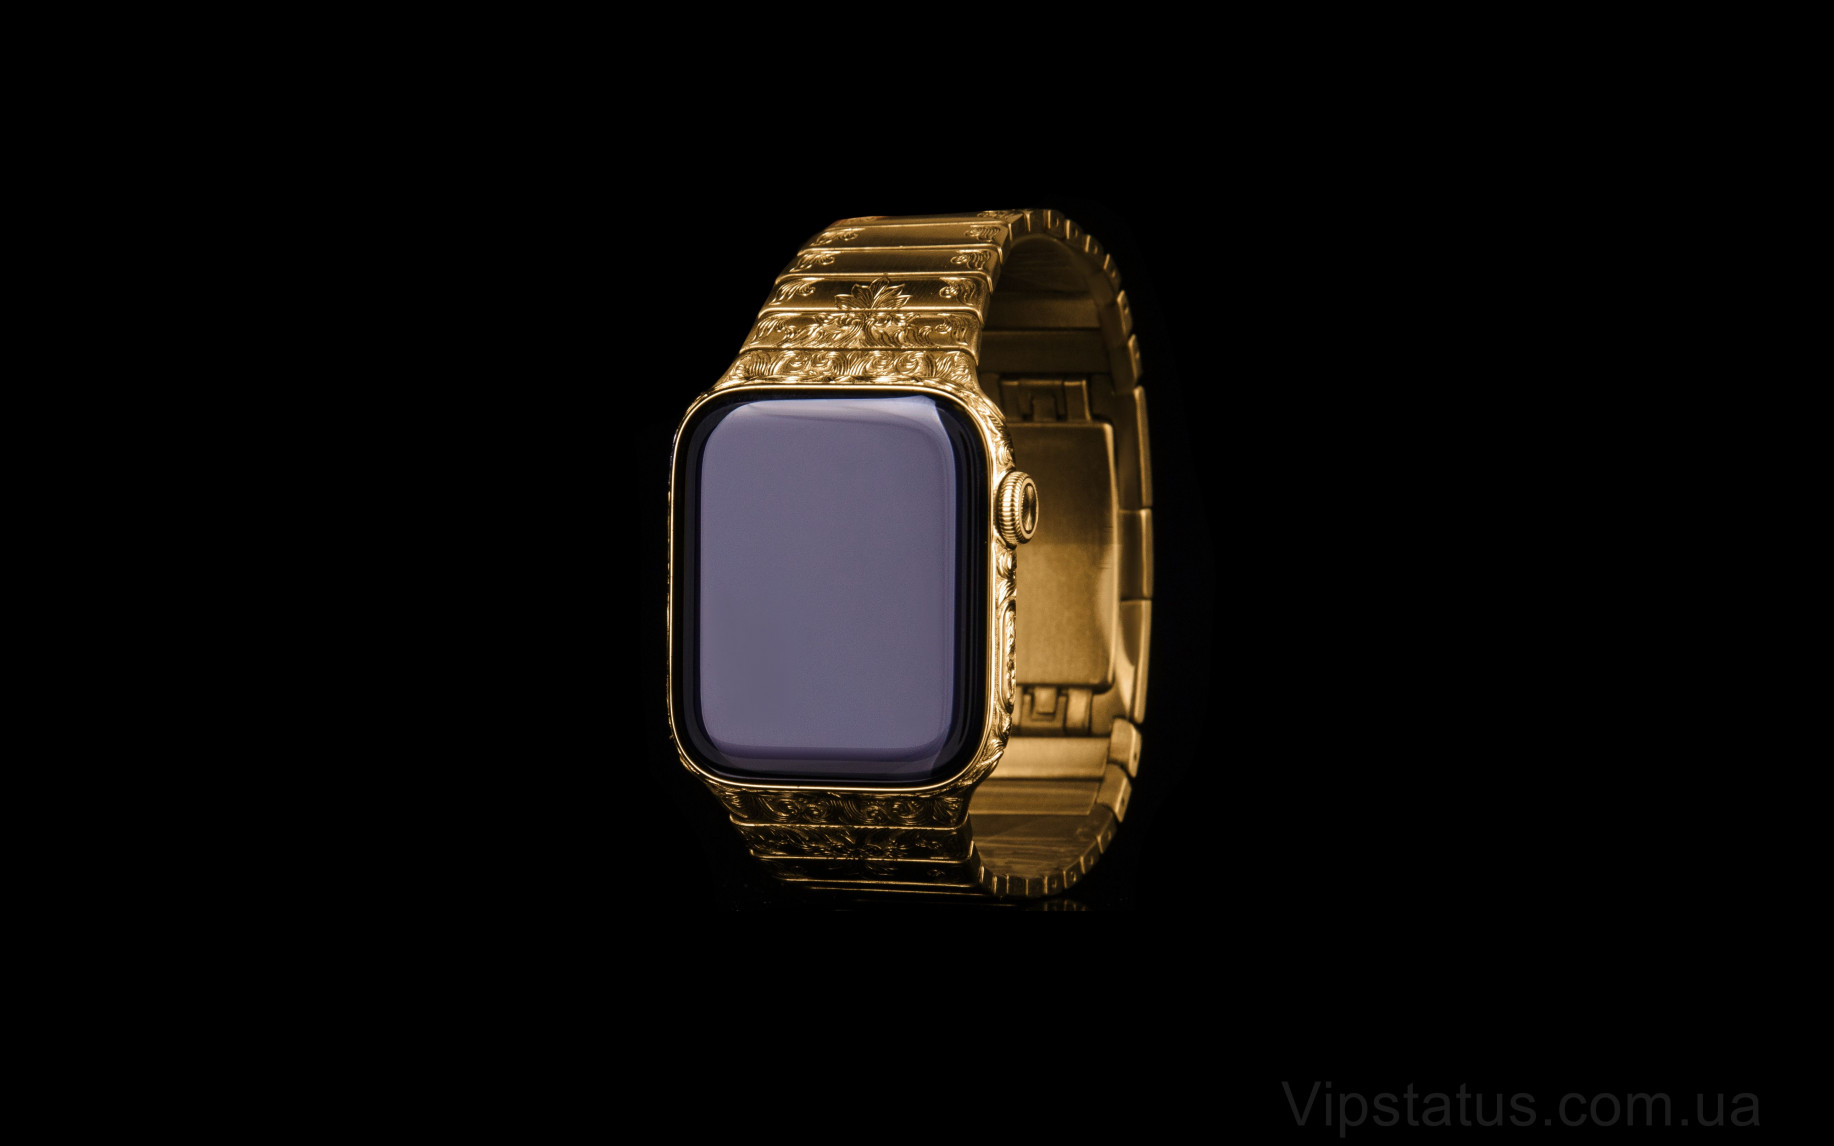 Элитный Gold Star Apple Watch 6 Gold Star Apple Watch 6 изображение 1